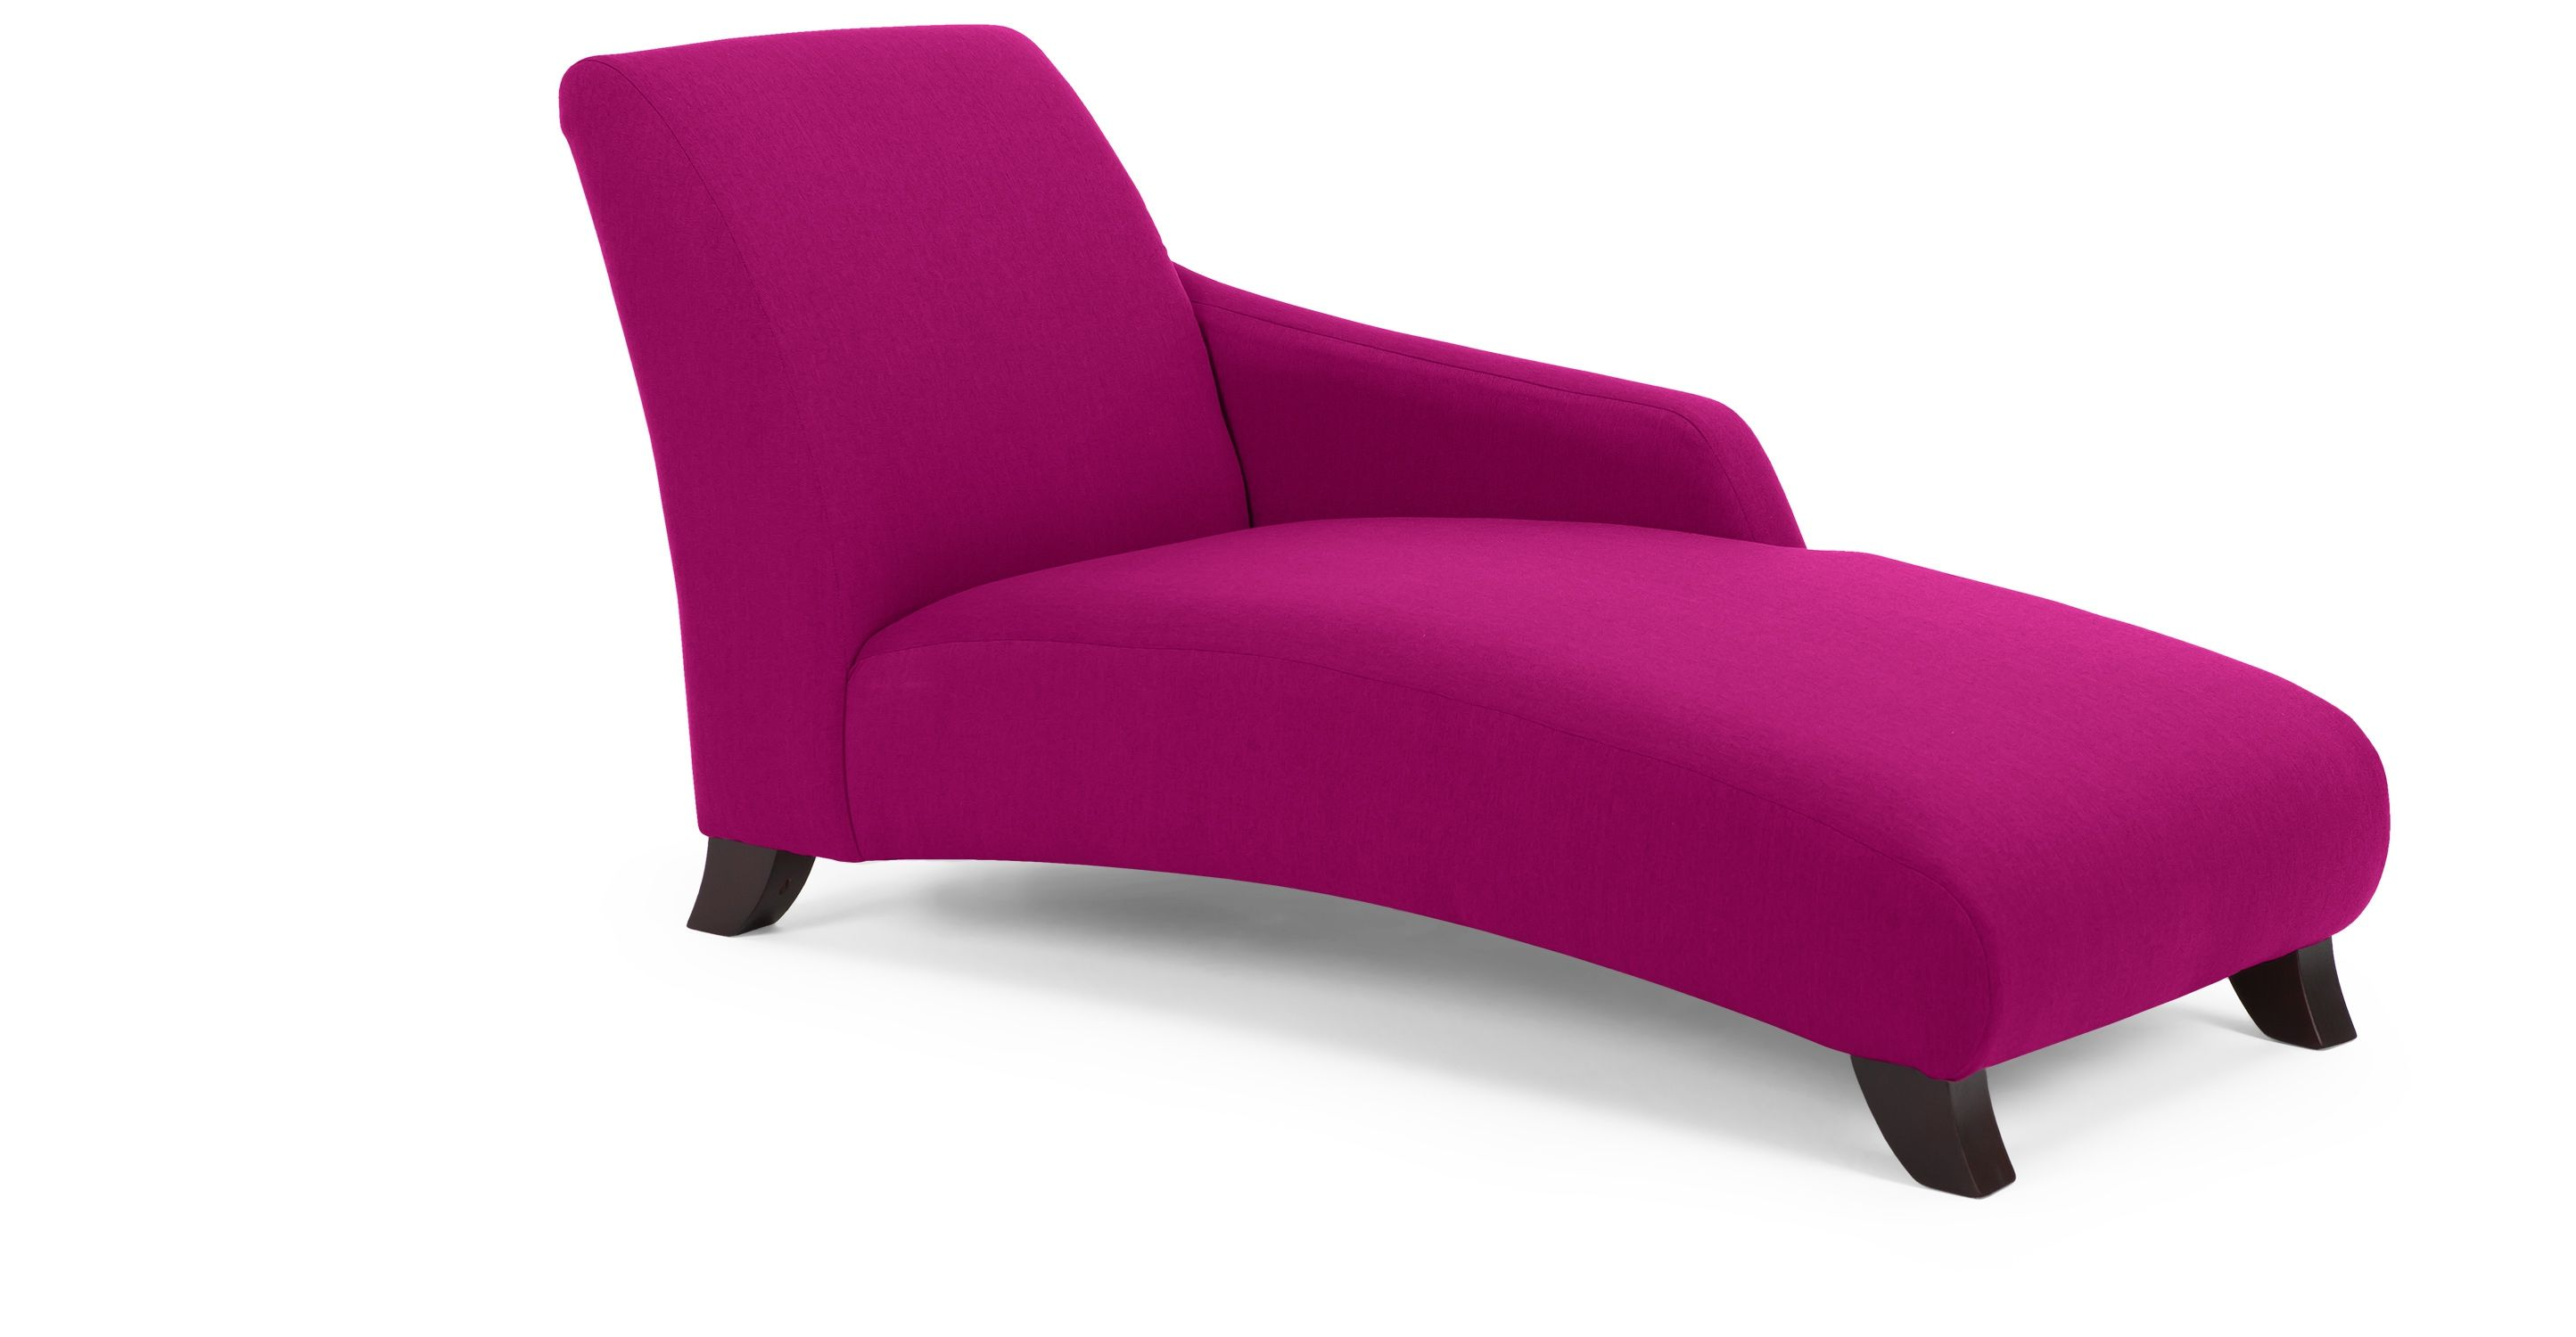 Fauteuil Chesterfield Fushia Panama Right Hand Facing Chaise In Fuschia Pink Made